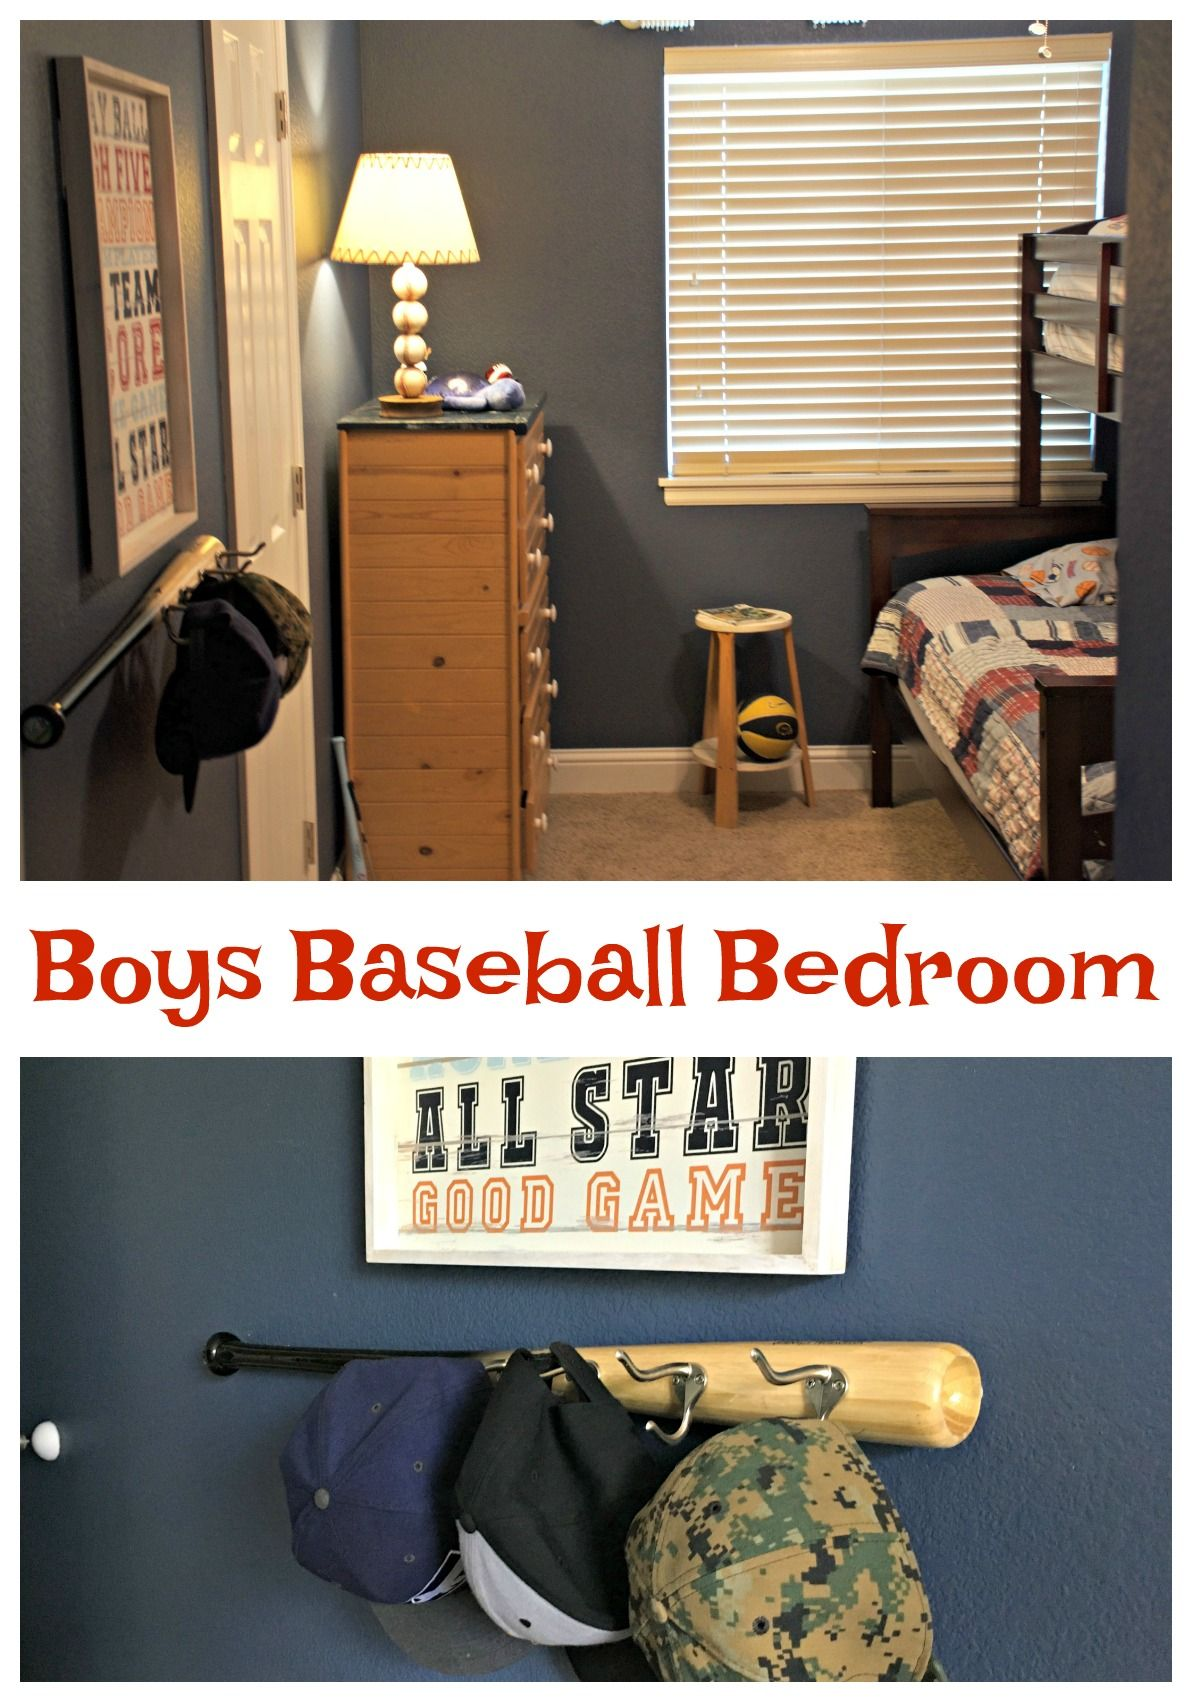 Baseball Bedroom For Boys With DIY Cap Hat Holder Made Recycled Bat Kids Via